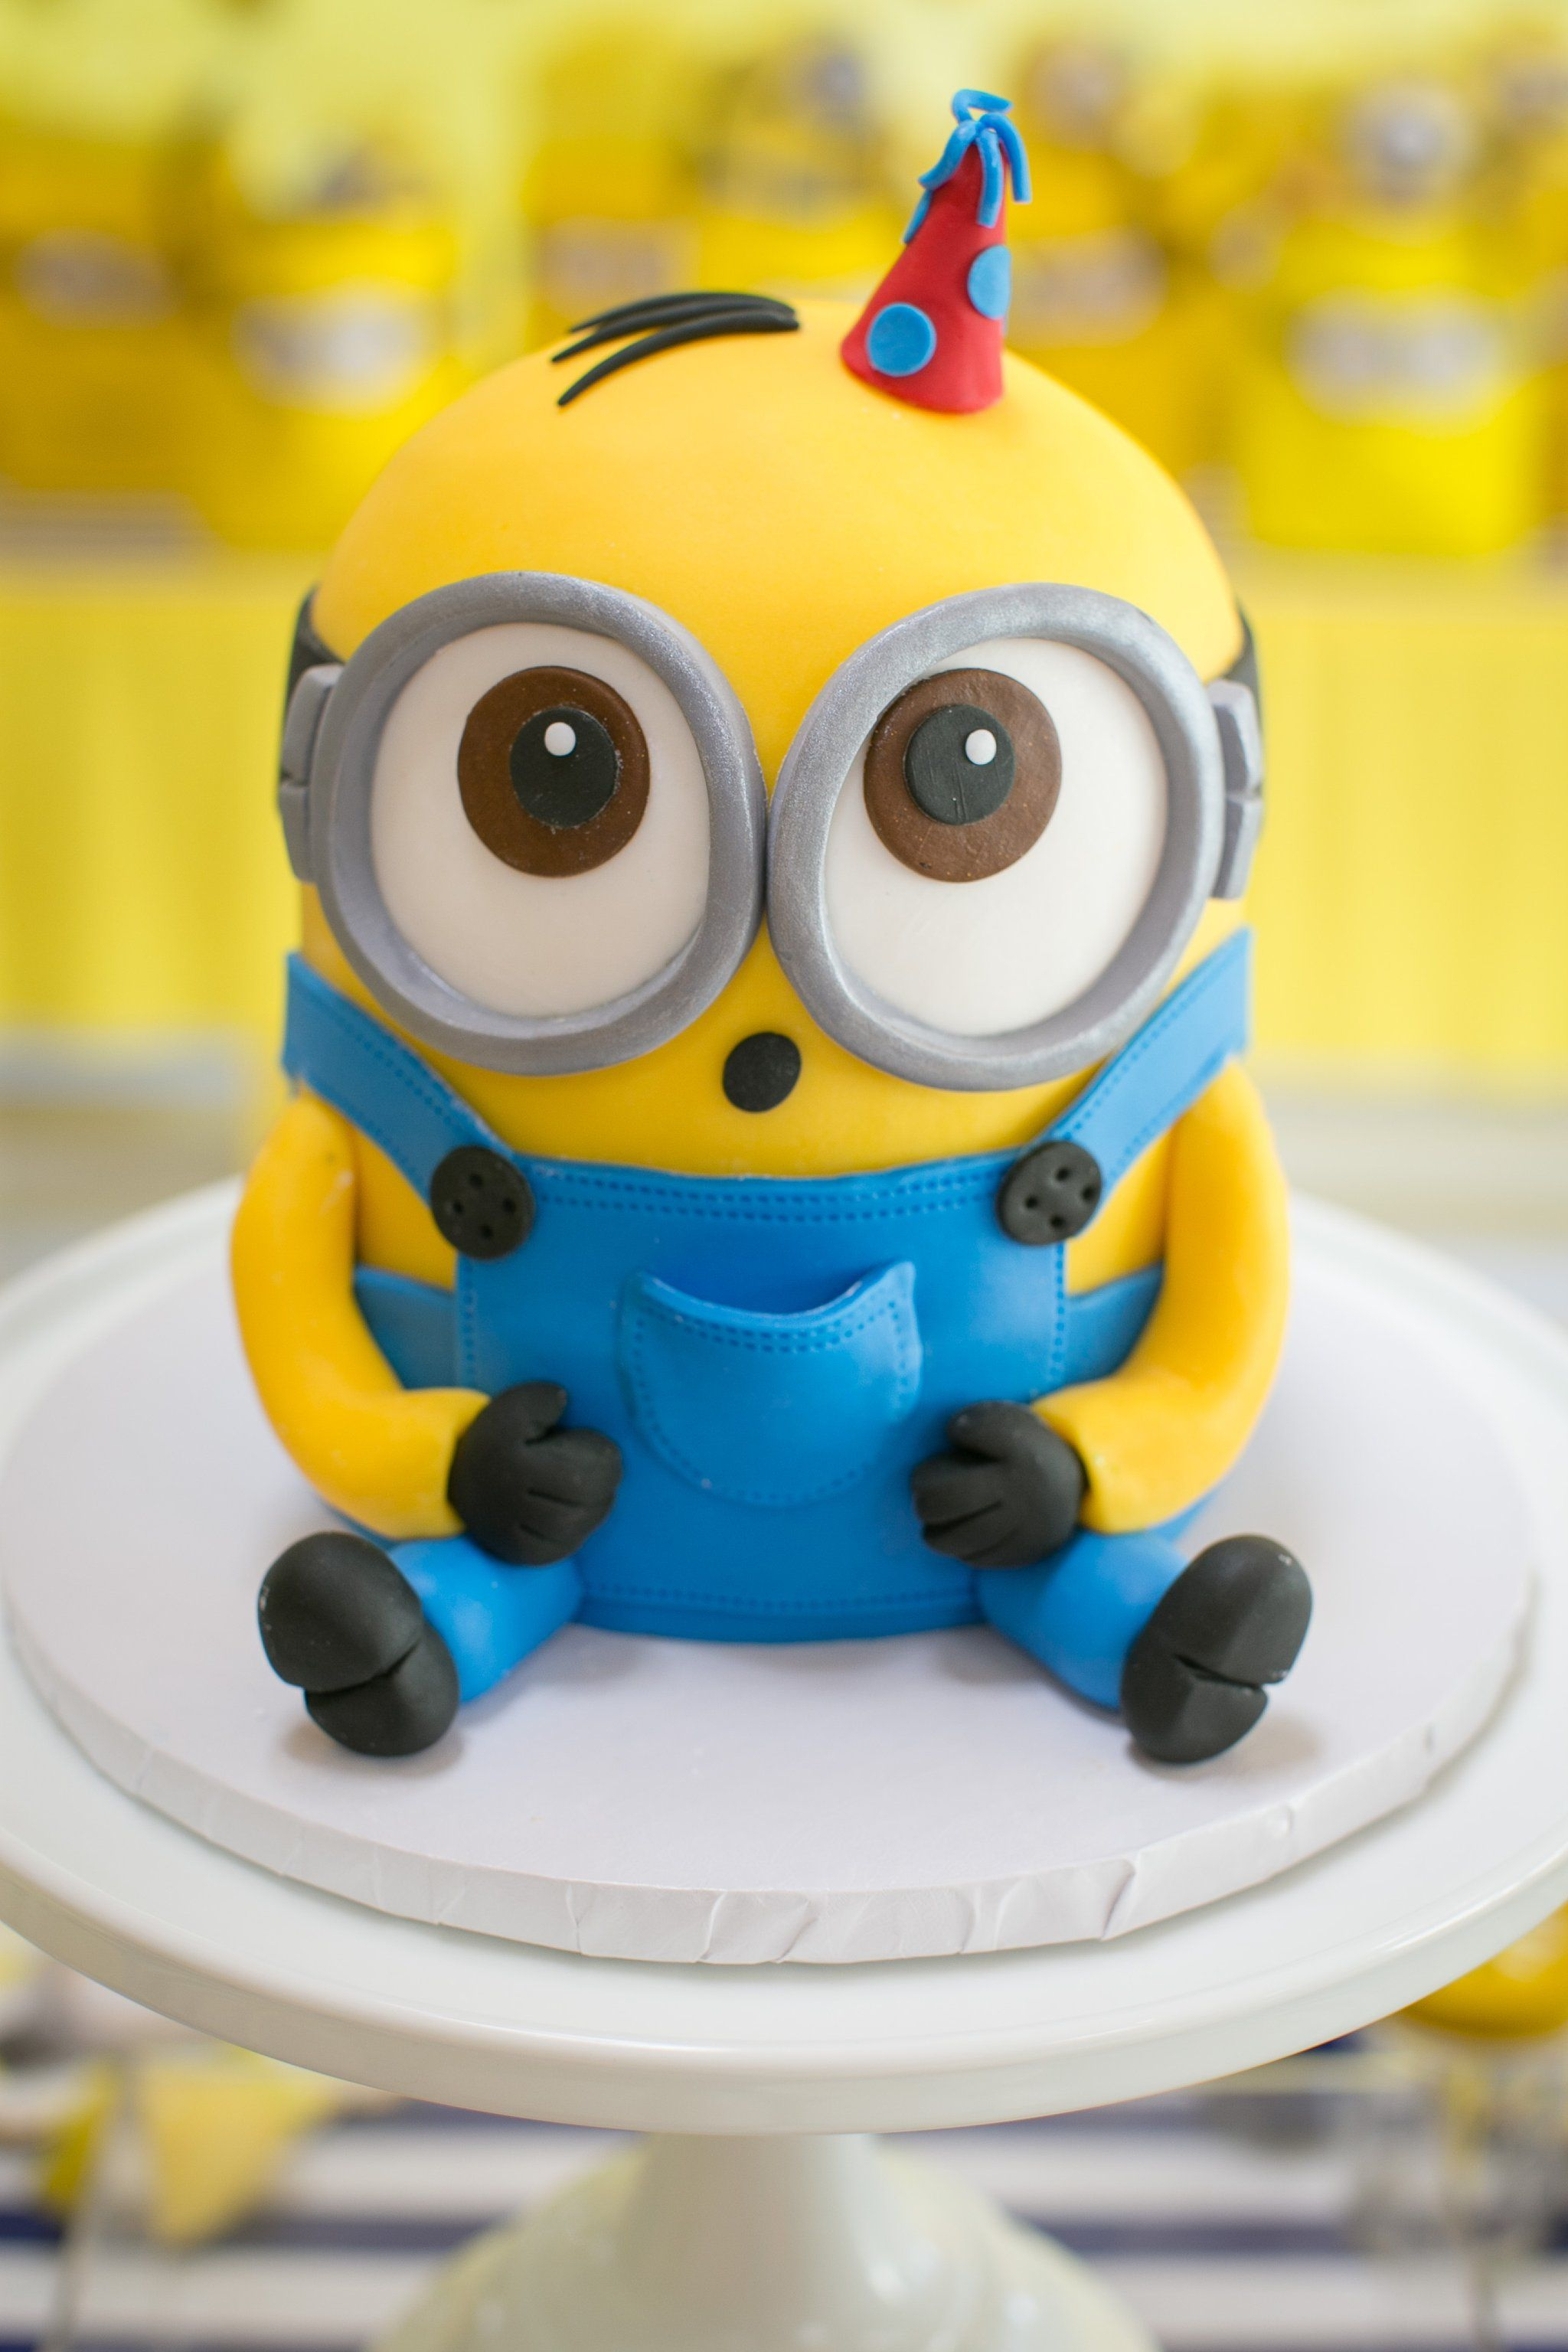 Minion Birthday Cake This One In A Minion Birthday Party Will Have Your Kiddo Going